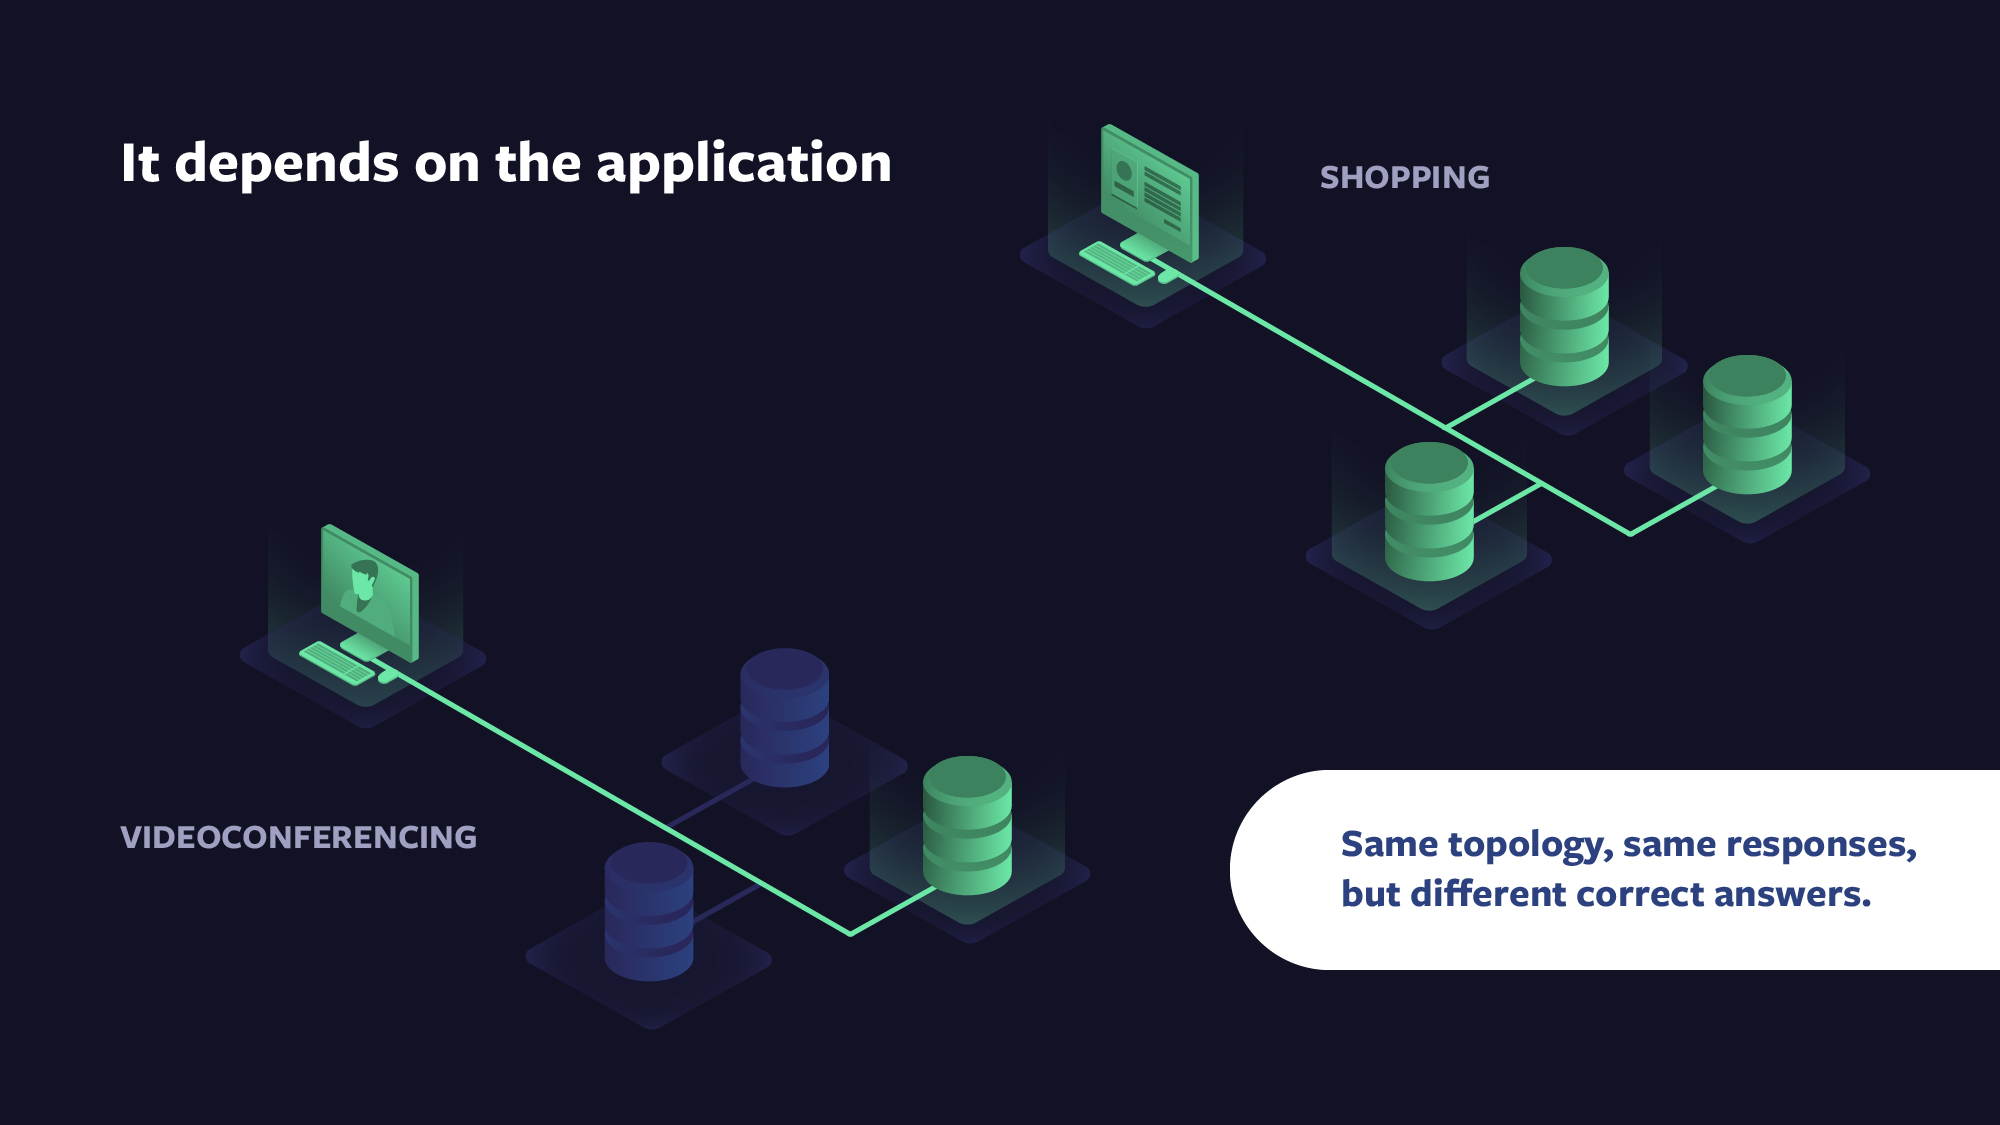 The correct answer to this question depends on the particularities of the application and its required trade-offs. For instance, when video-conferencing with your family, the correct trade-offs are very different from when executing an online shopping transaction. OIL+VCache on Facebook Engineering